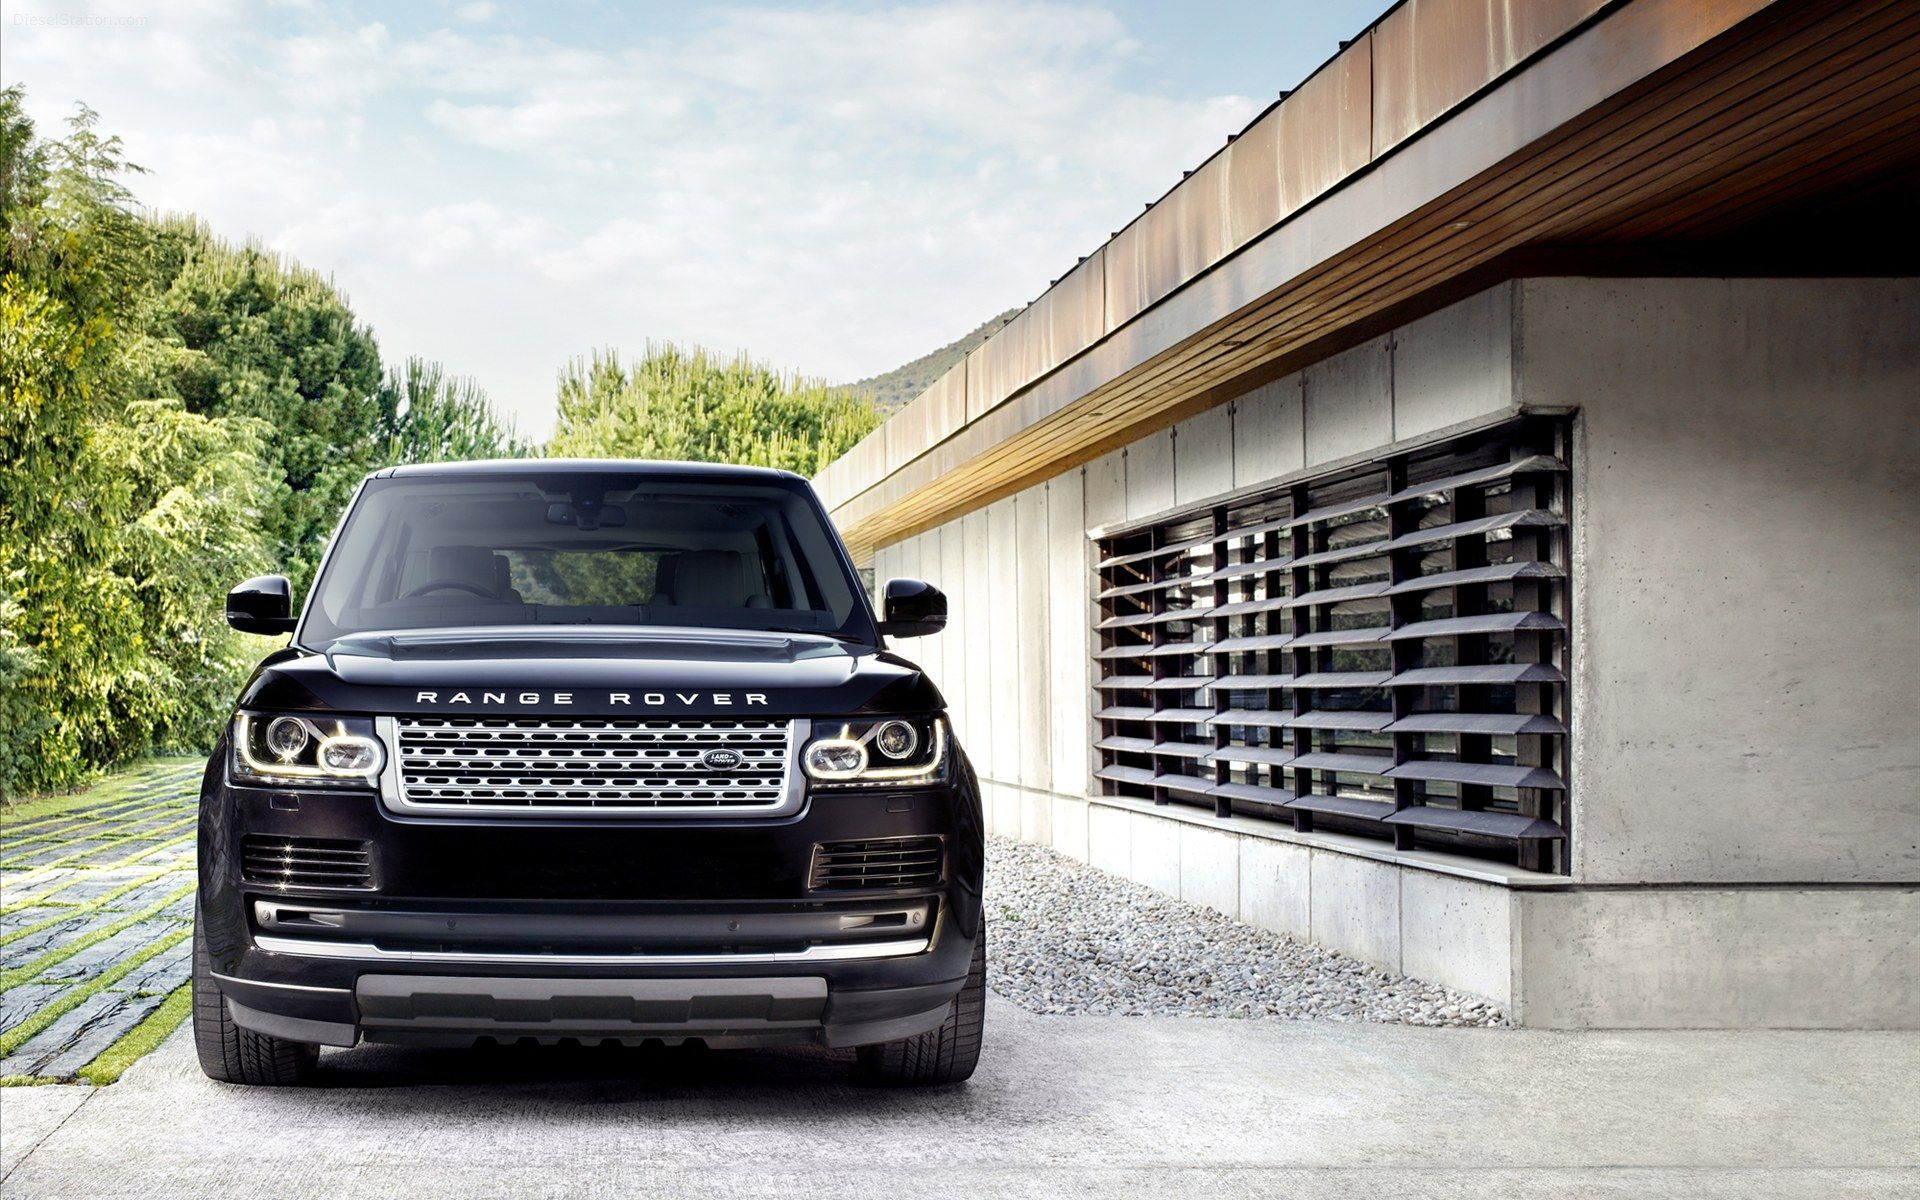 The all new 2013 Land Rover Range Rover Nice to see it still has